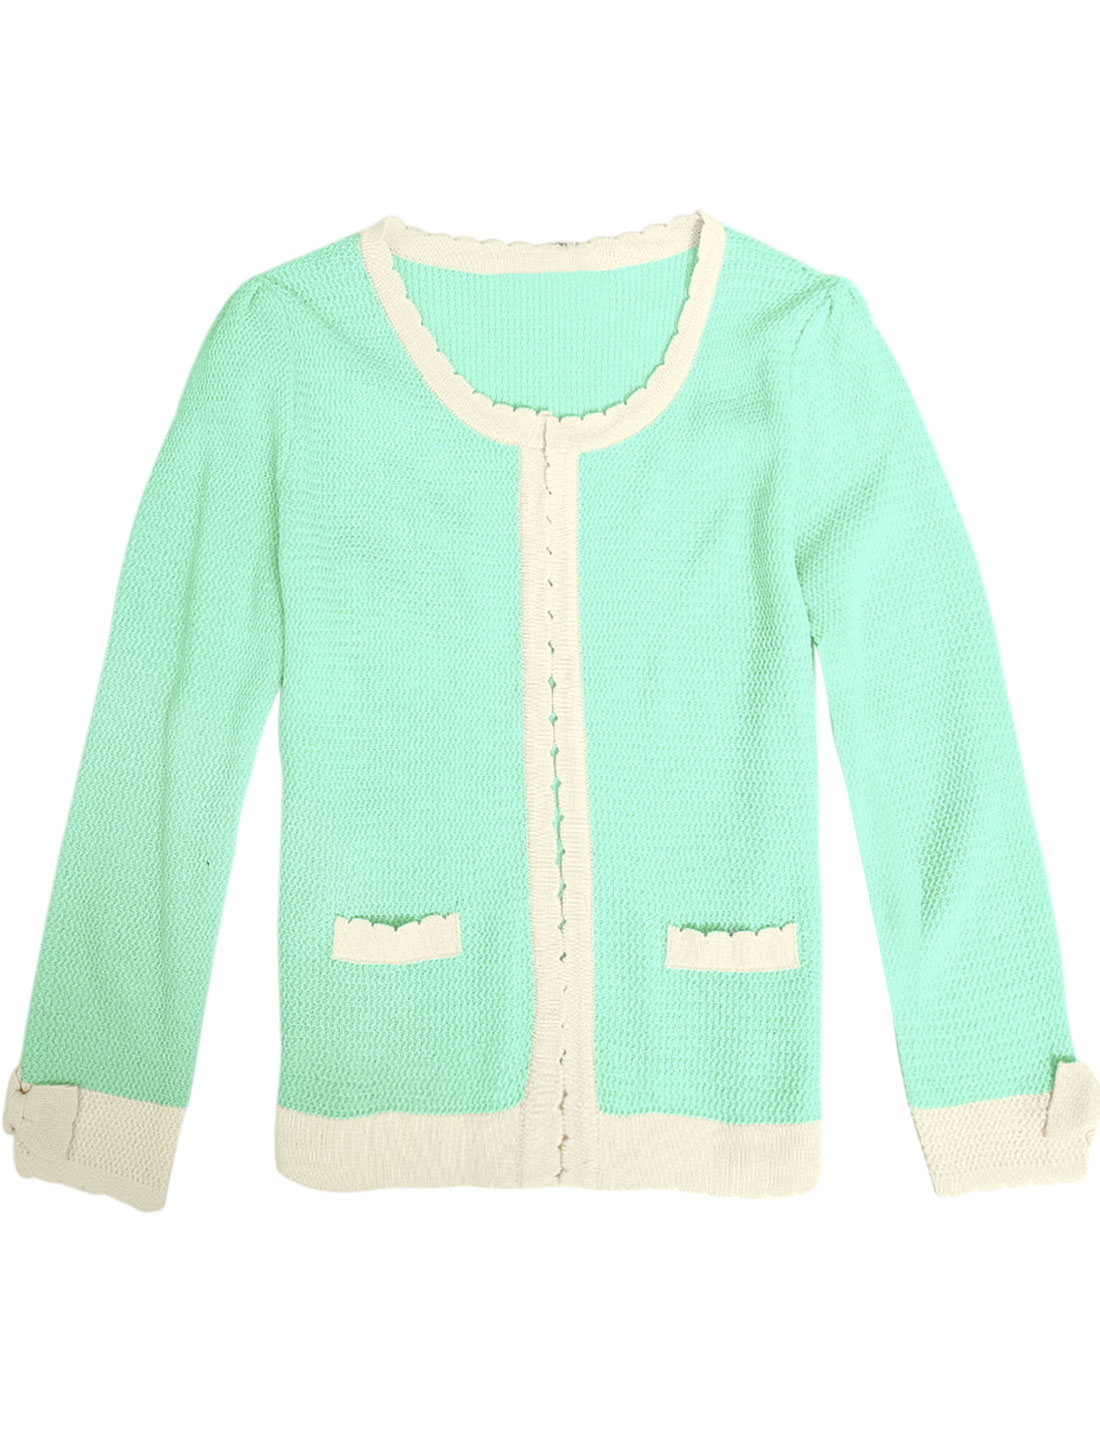 Lady Long Sleeve Bowknot Decor Cuffs Elegant Cardigan Sweater Mint XS